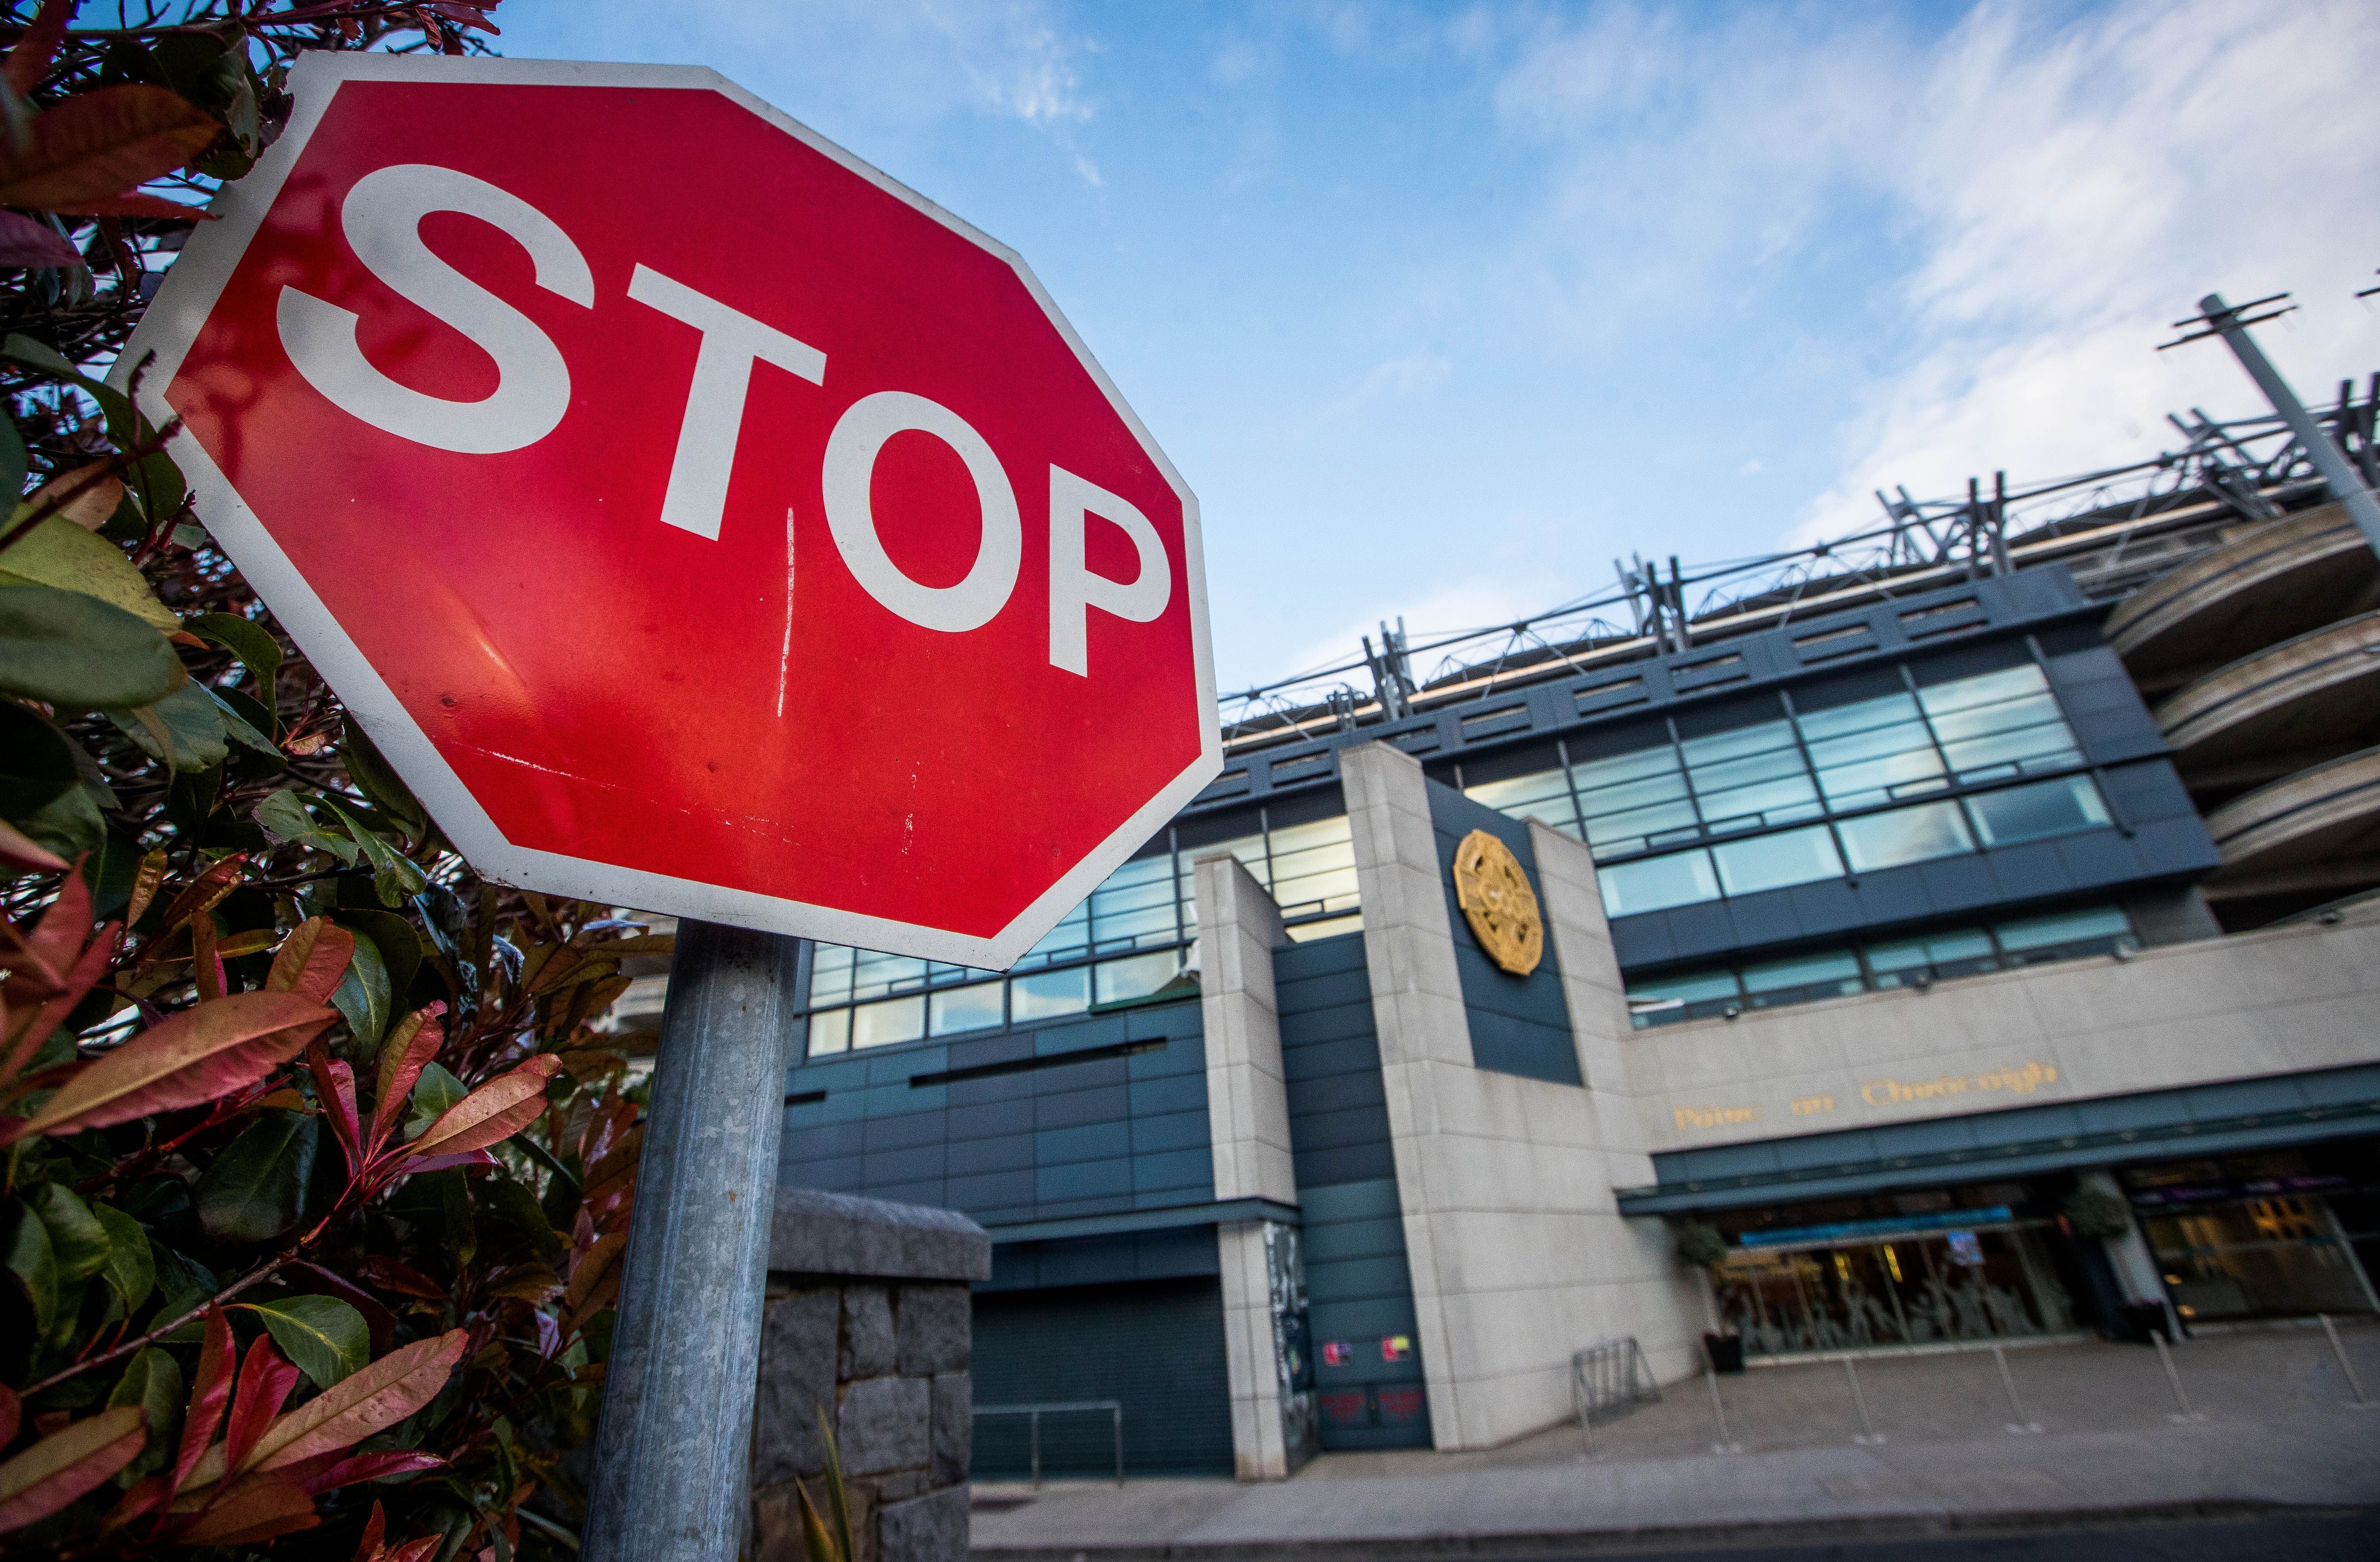 The decision to call an immediate halt came at Croke Park on Monday with public health cited as the reason